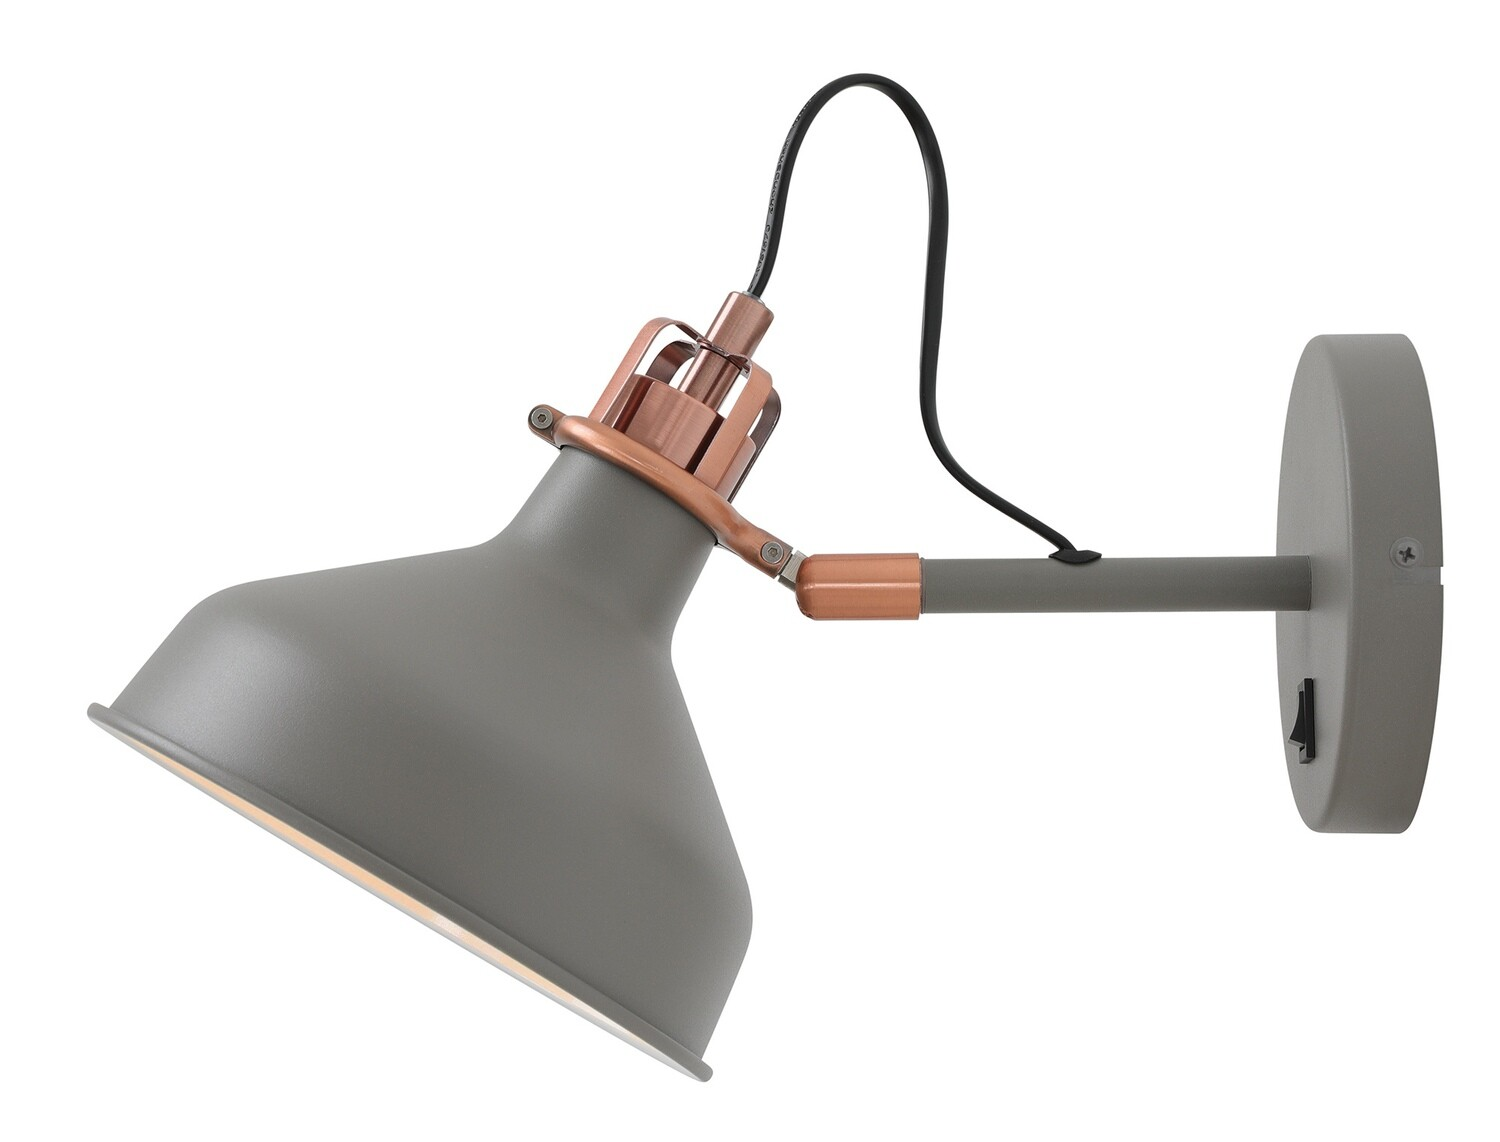 Lumina Adjustable Wall Lamp Switched, 1 x E27, Sand Grey/Copper/White